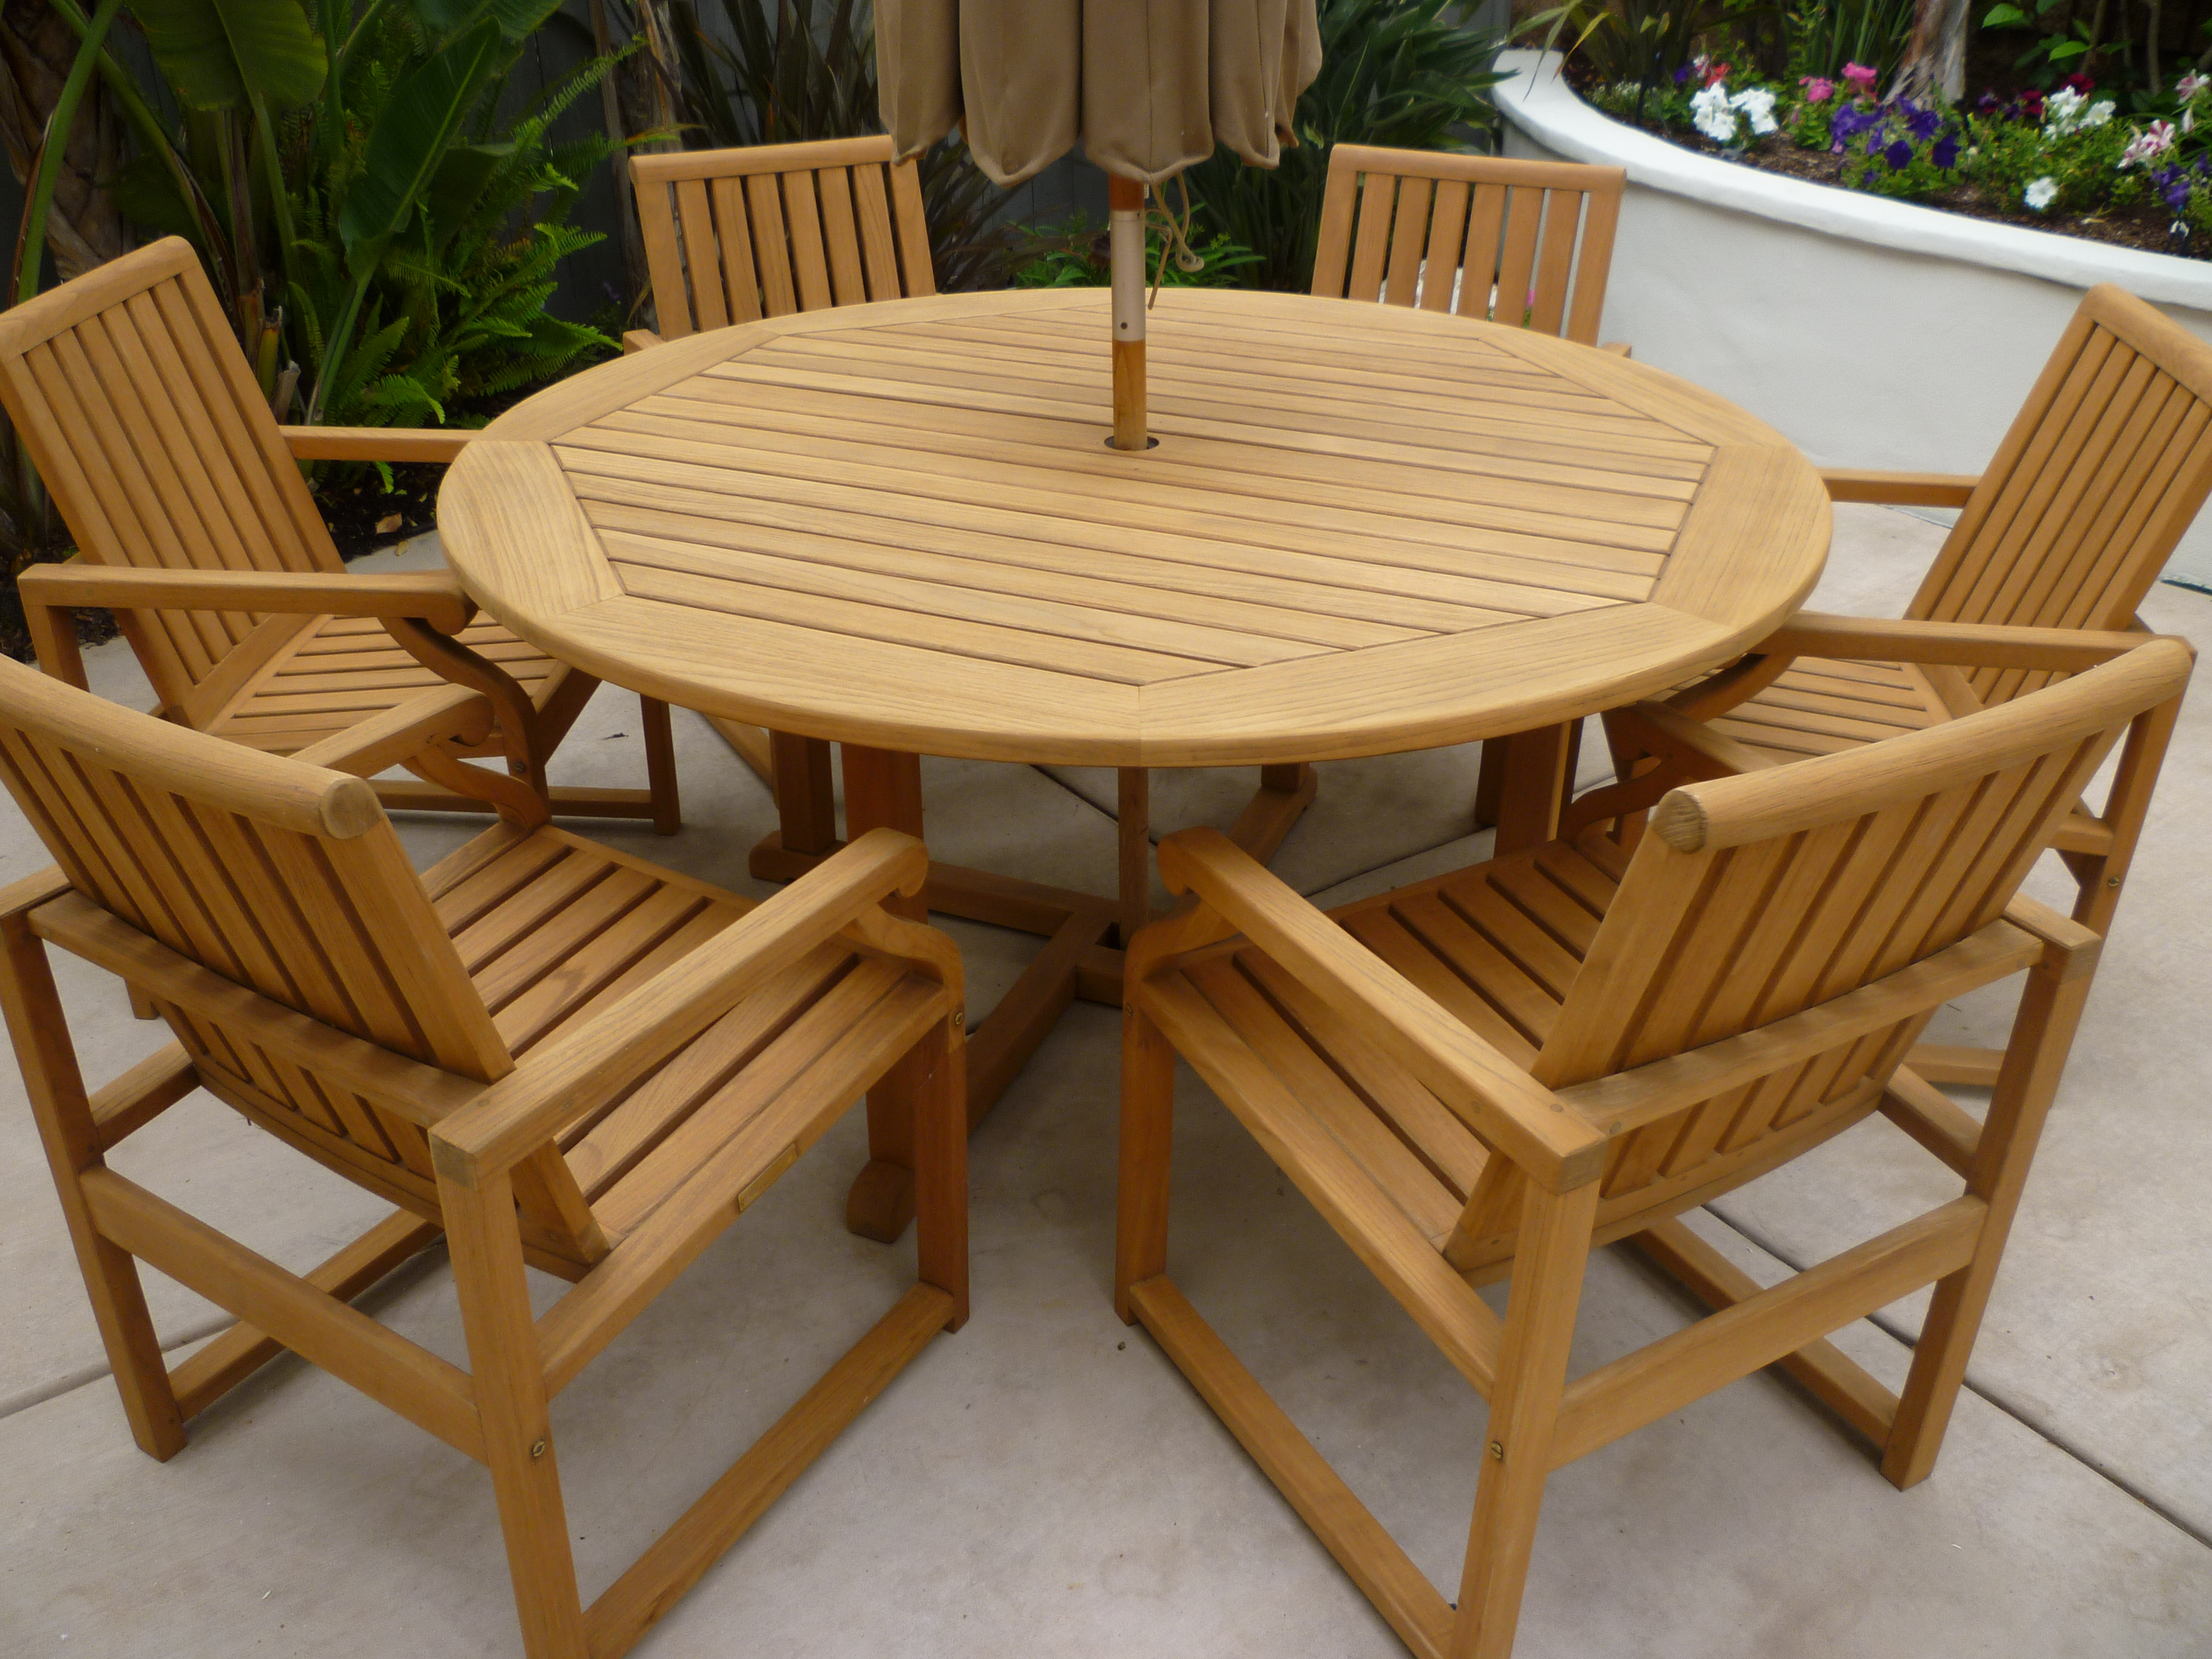 Stylish Teak Furniture for Any Outdoor Space Decoration